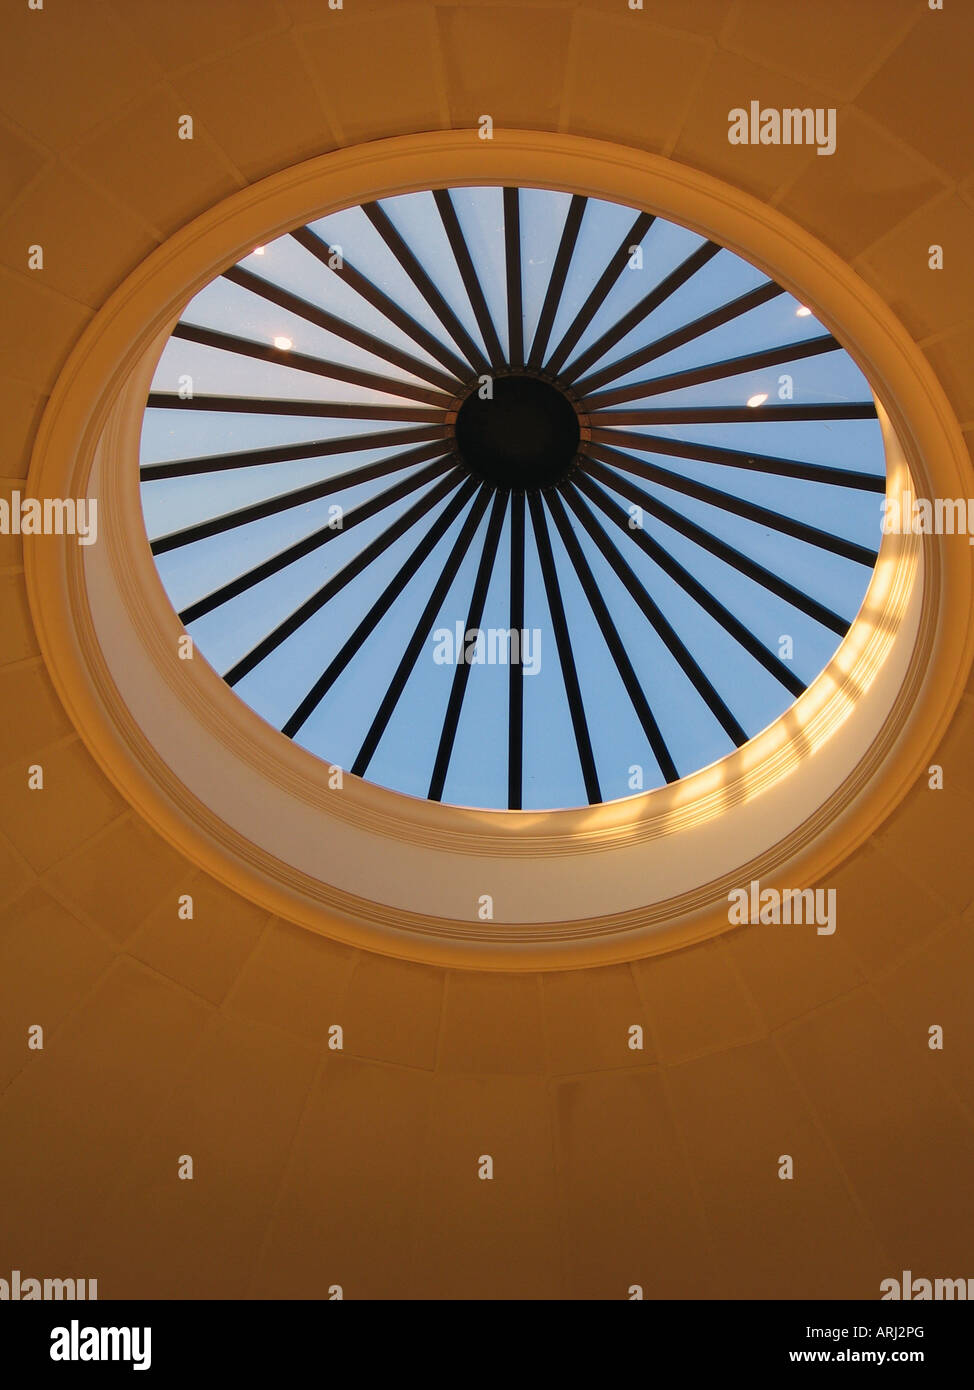 Oculus Of The Dome Room Of Thomas Jeffersons Monticello Stock Photo